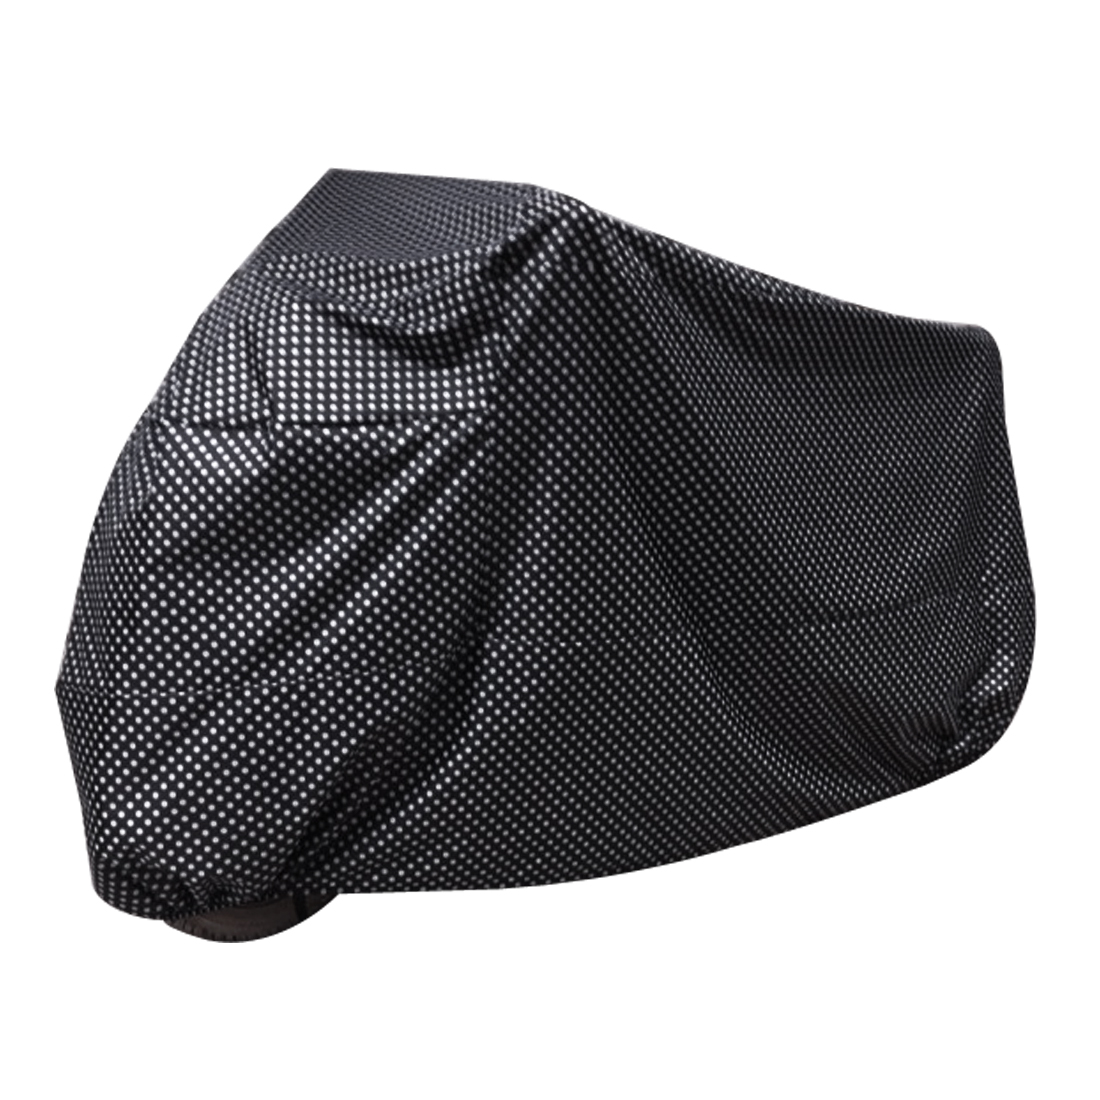 Dotted Pattern 180T Rain Dust Resistant Waterproof Storage Cover for Motorcycle